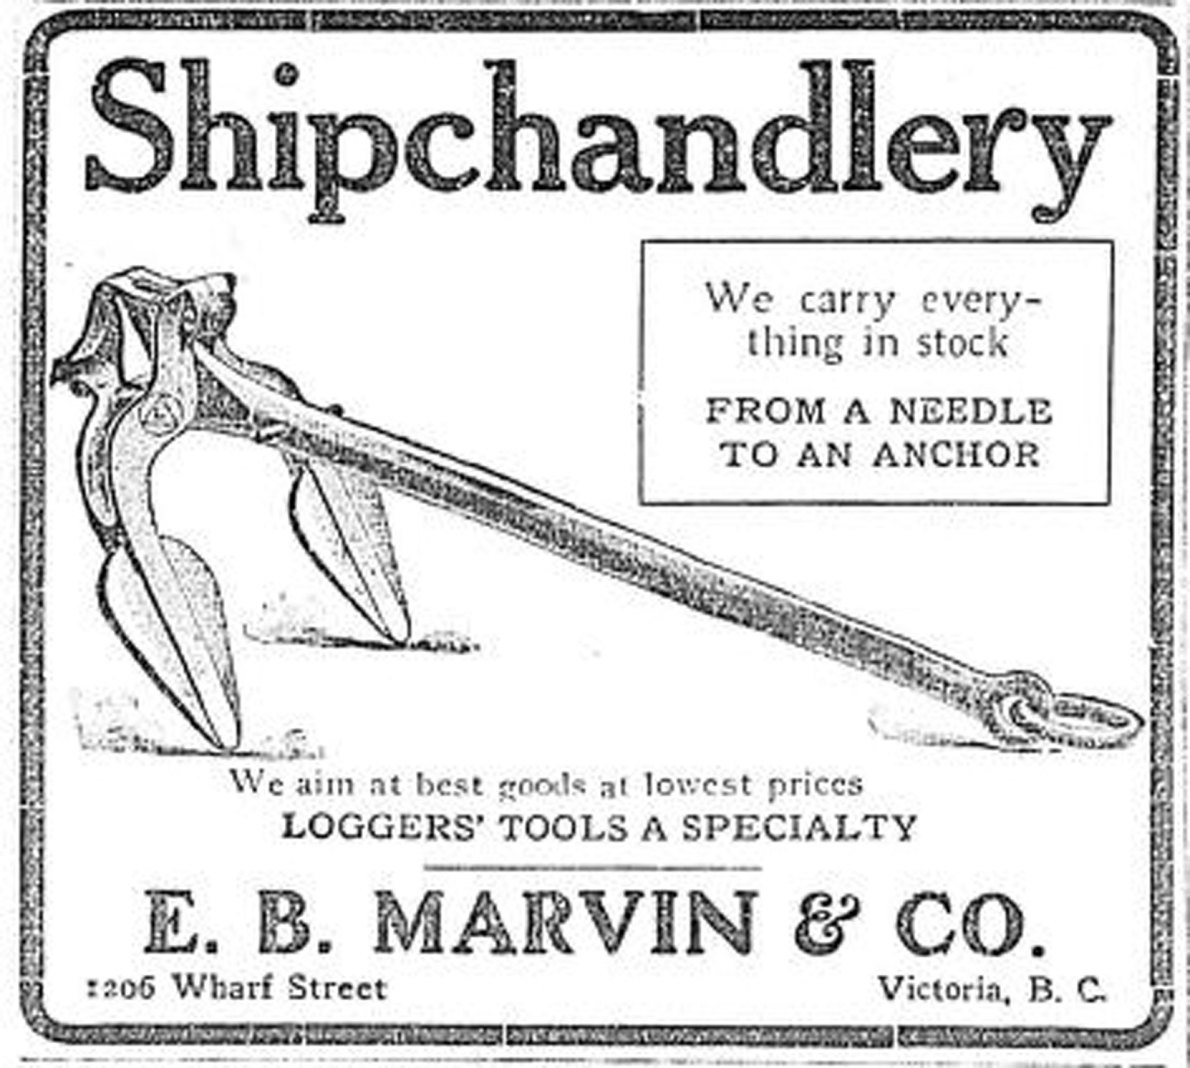 1909 advertisement for E.B. Marvin & Co., Ship Chandlers, 1206 Wharf Street. (Victoria Online Sightseeing Tours collection)